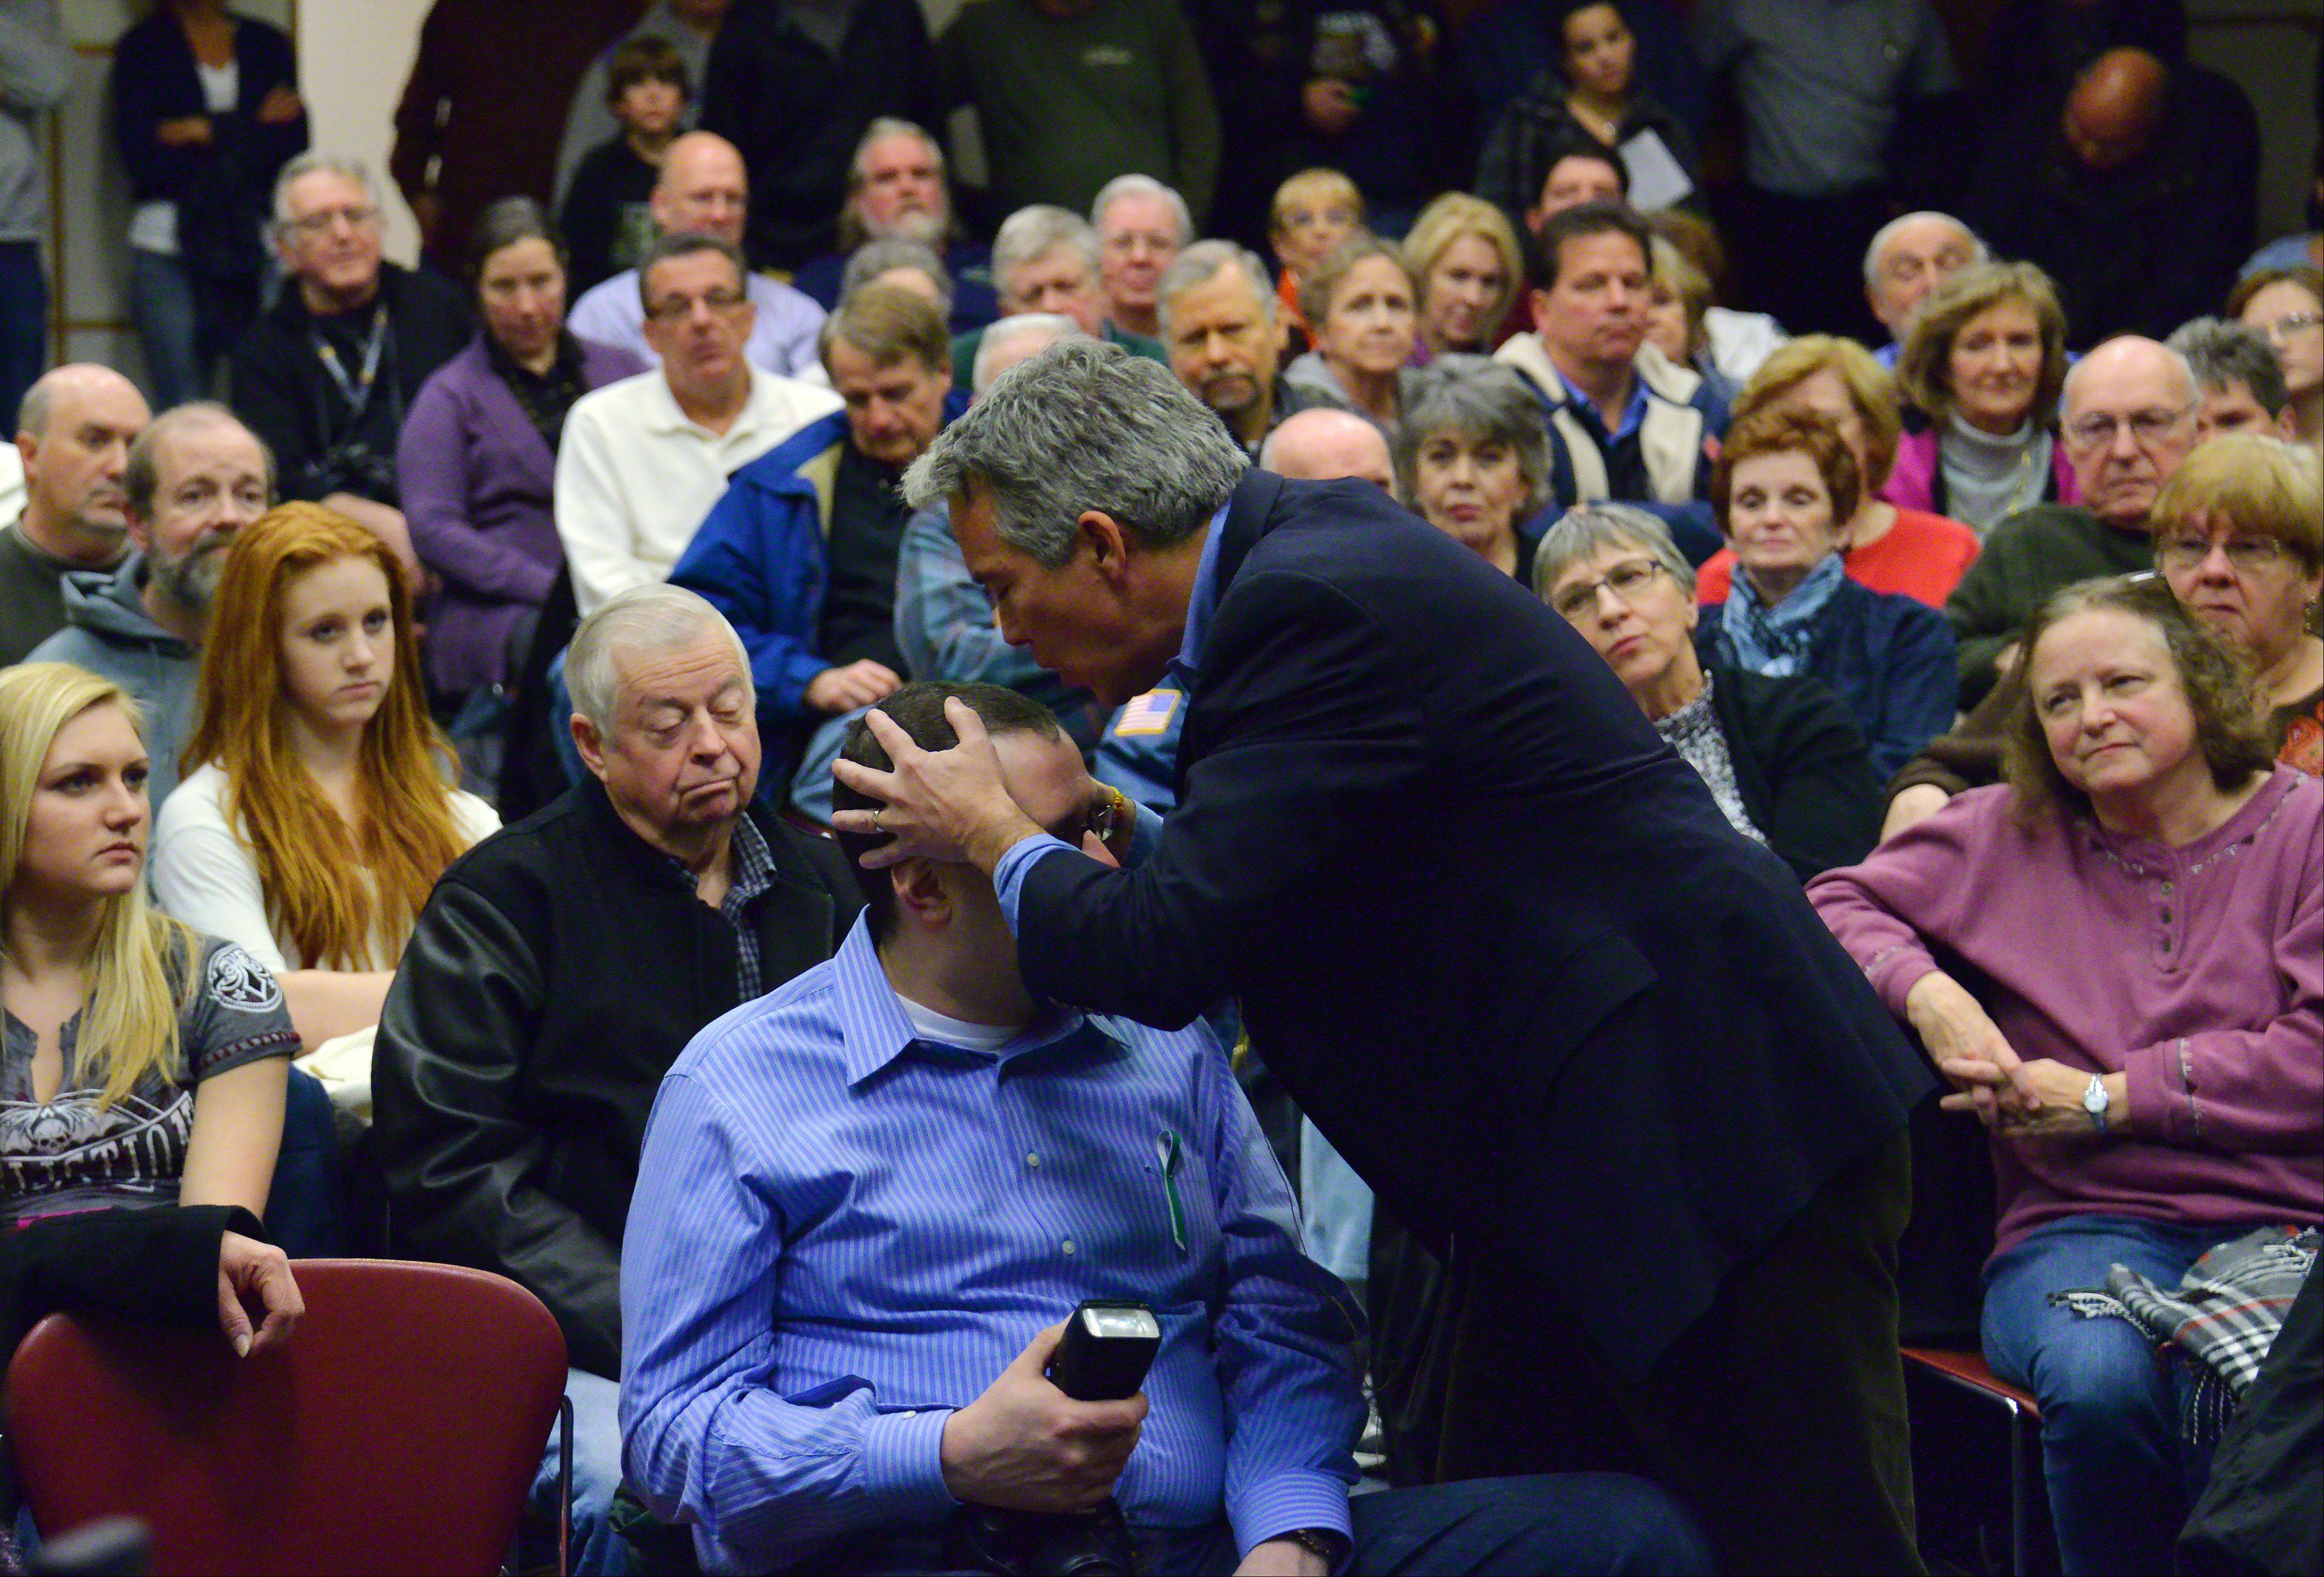 Former U.S. Rep. Joe Walsh made his first public appearance as an ex-congressman at the Arlington Heights Memorial Library on Thursday night and spoke to over 100 people. Walsh used one of those people, Carl Arriaza of Mount Prospect, to make a point as he talked about the country�s future.